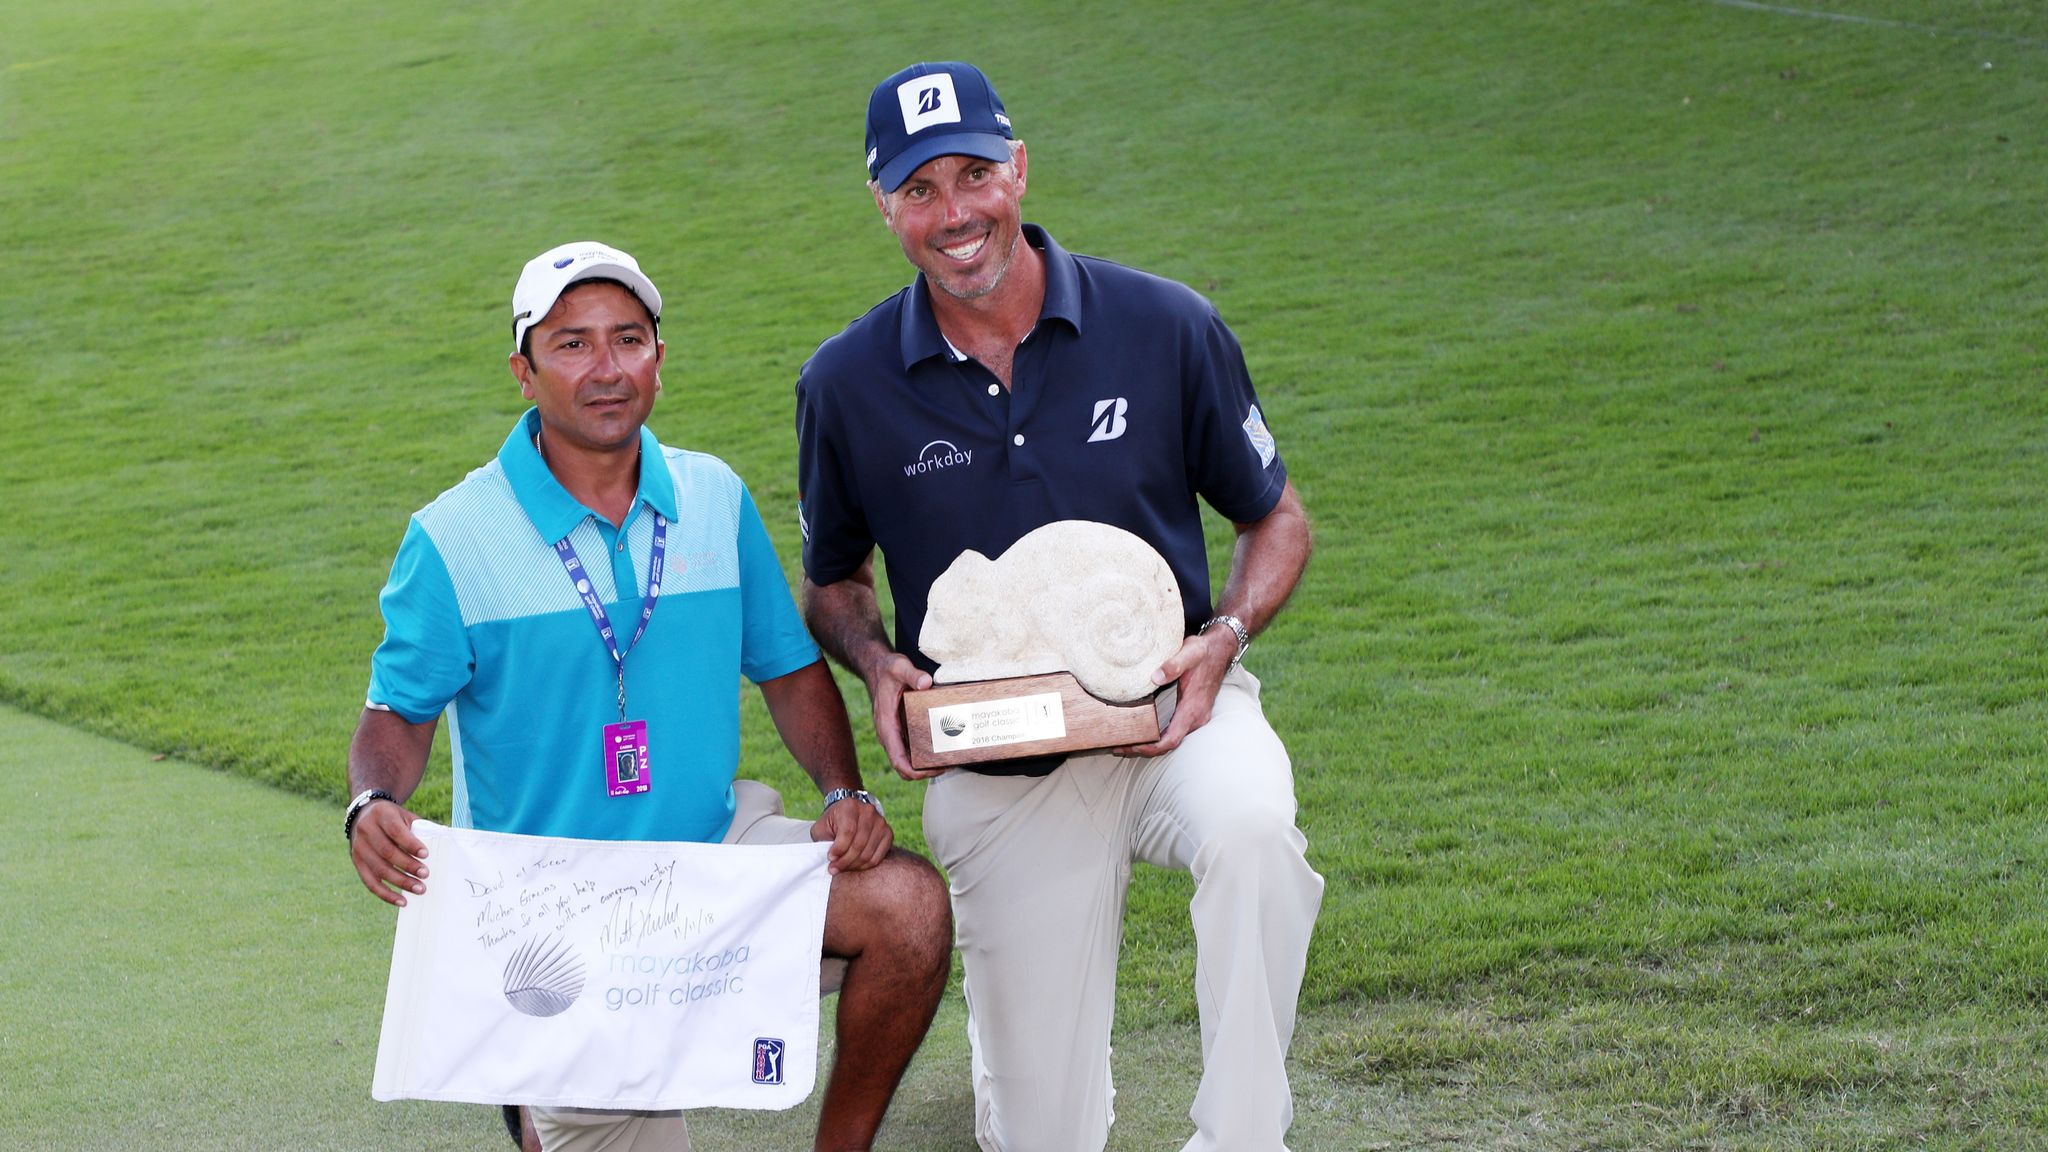 Matt Kuchar issues apology for caddie payment row in Mexico